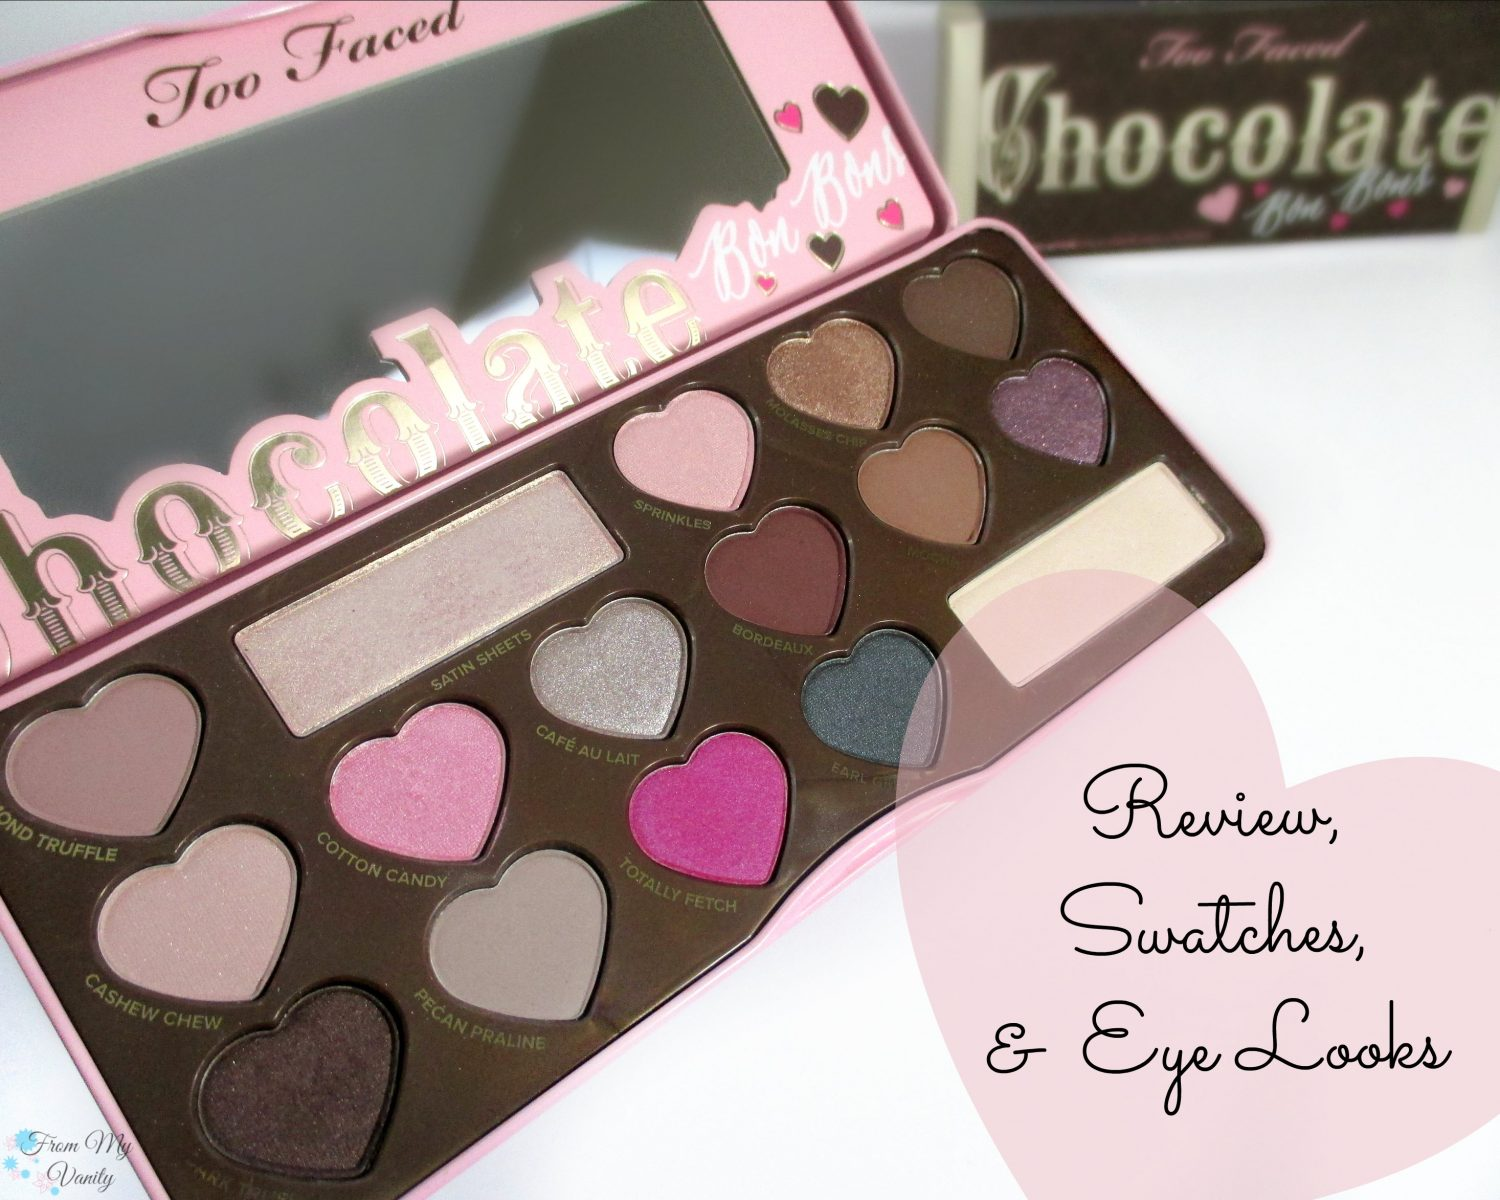 Too Faced Chocolate Bon Bons Palette - Review, Swatches, and Eye ...